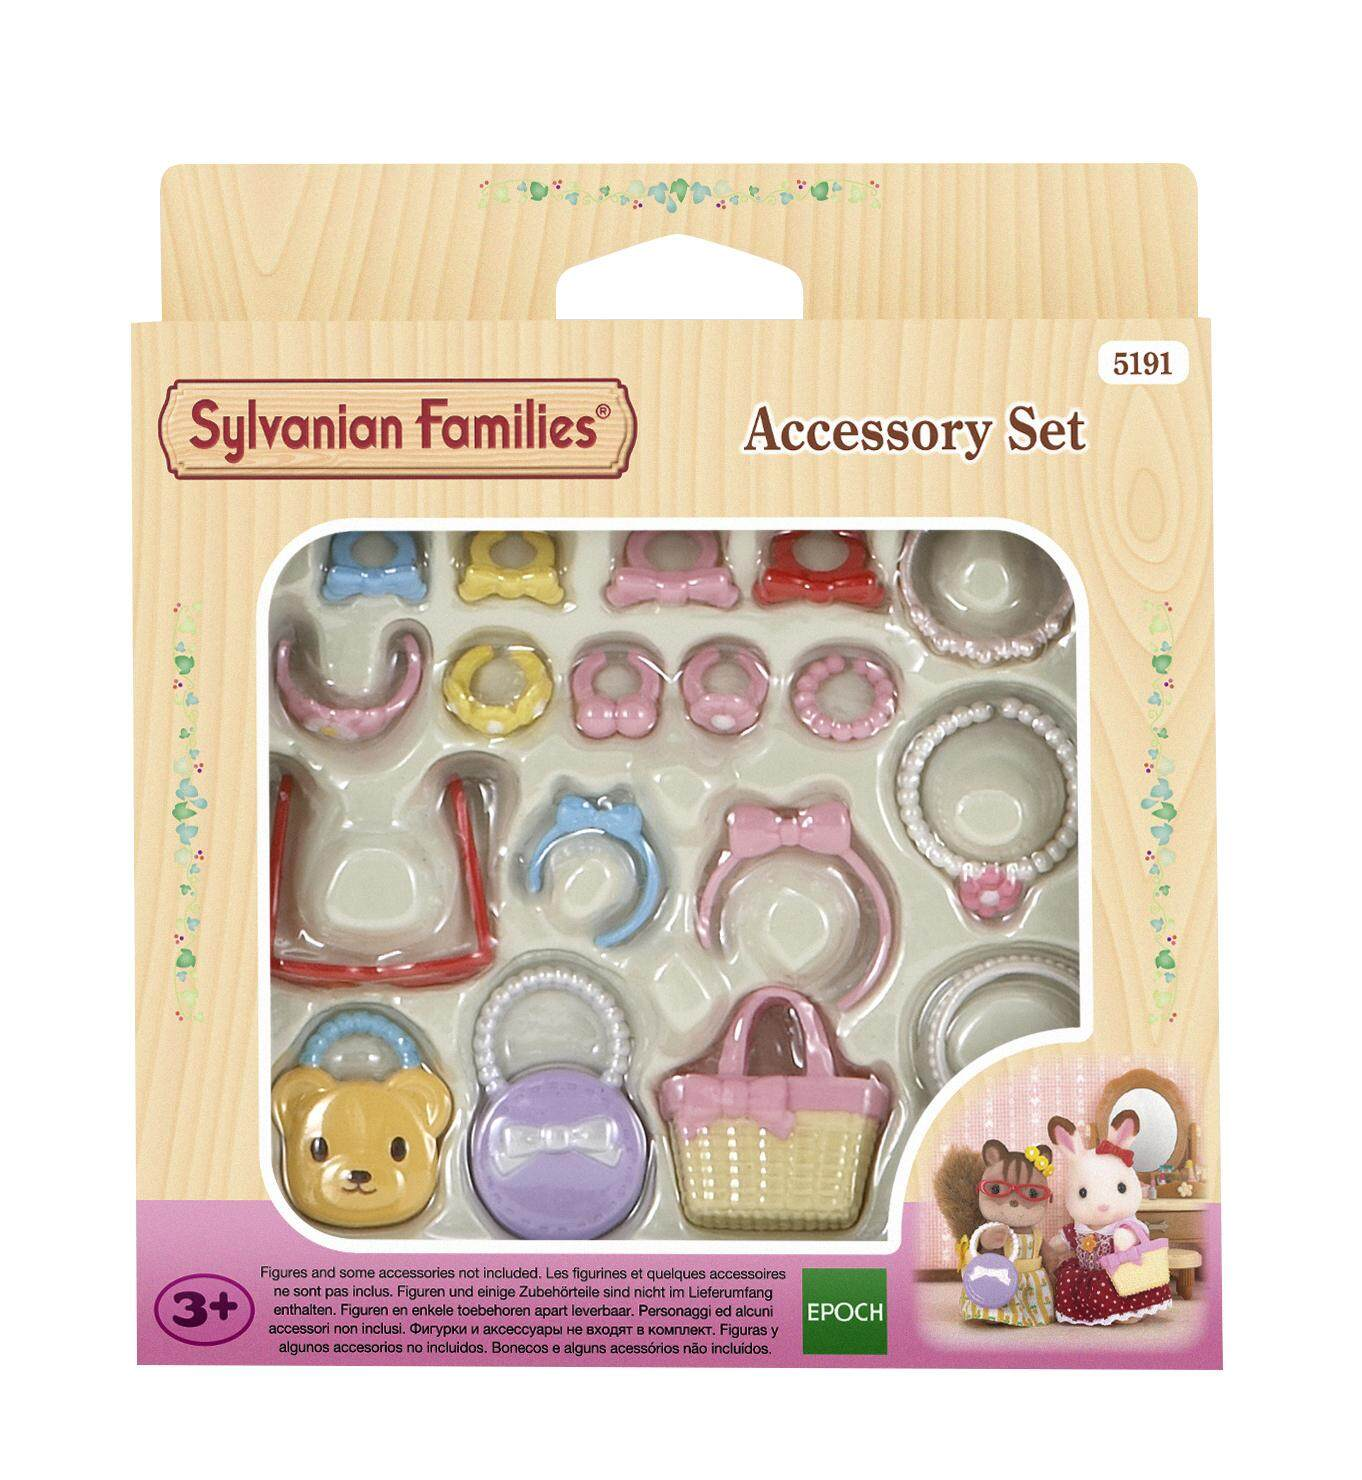 Sylvanian Families Accessory Set 5191 By Epoch Blooming Toys Sdn Bhd.